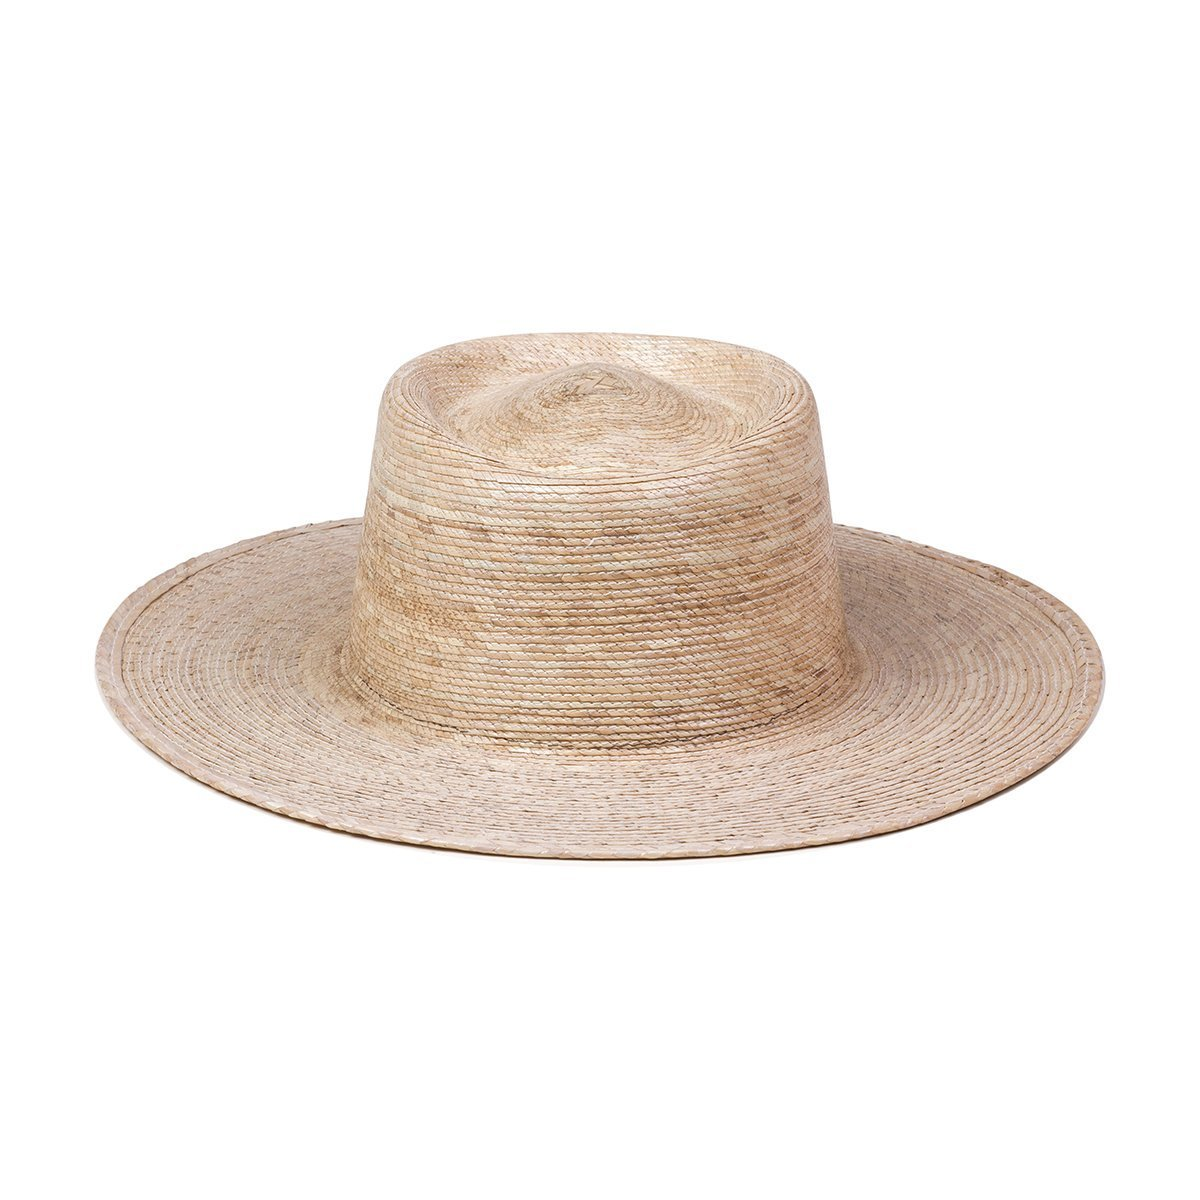 Load image into Gallery viewer, Palma Boater Hat by Lack of Color| Womens Straw Hats